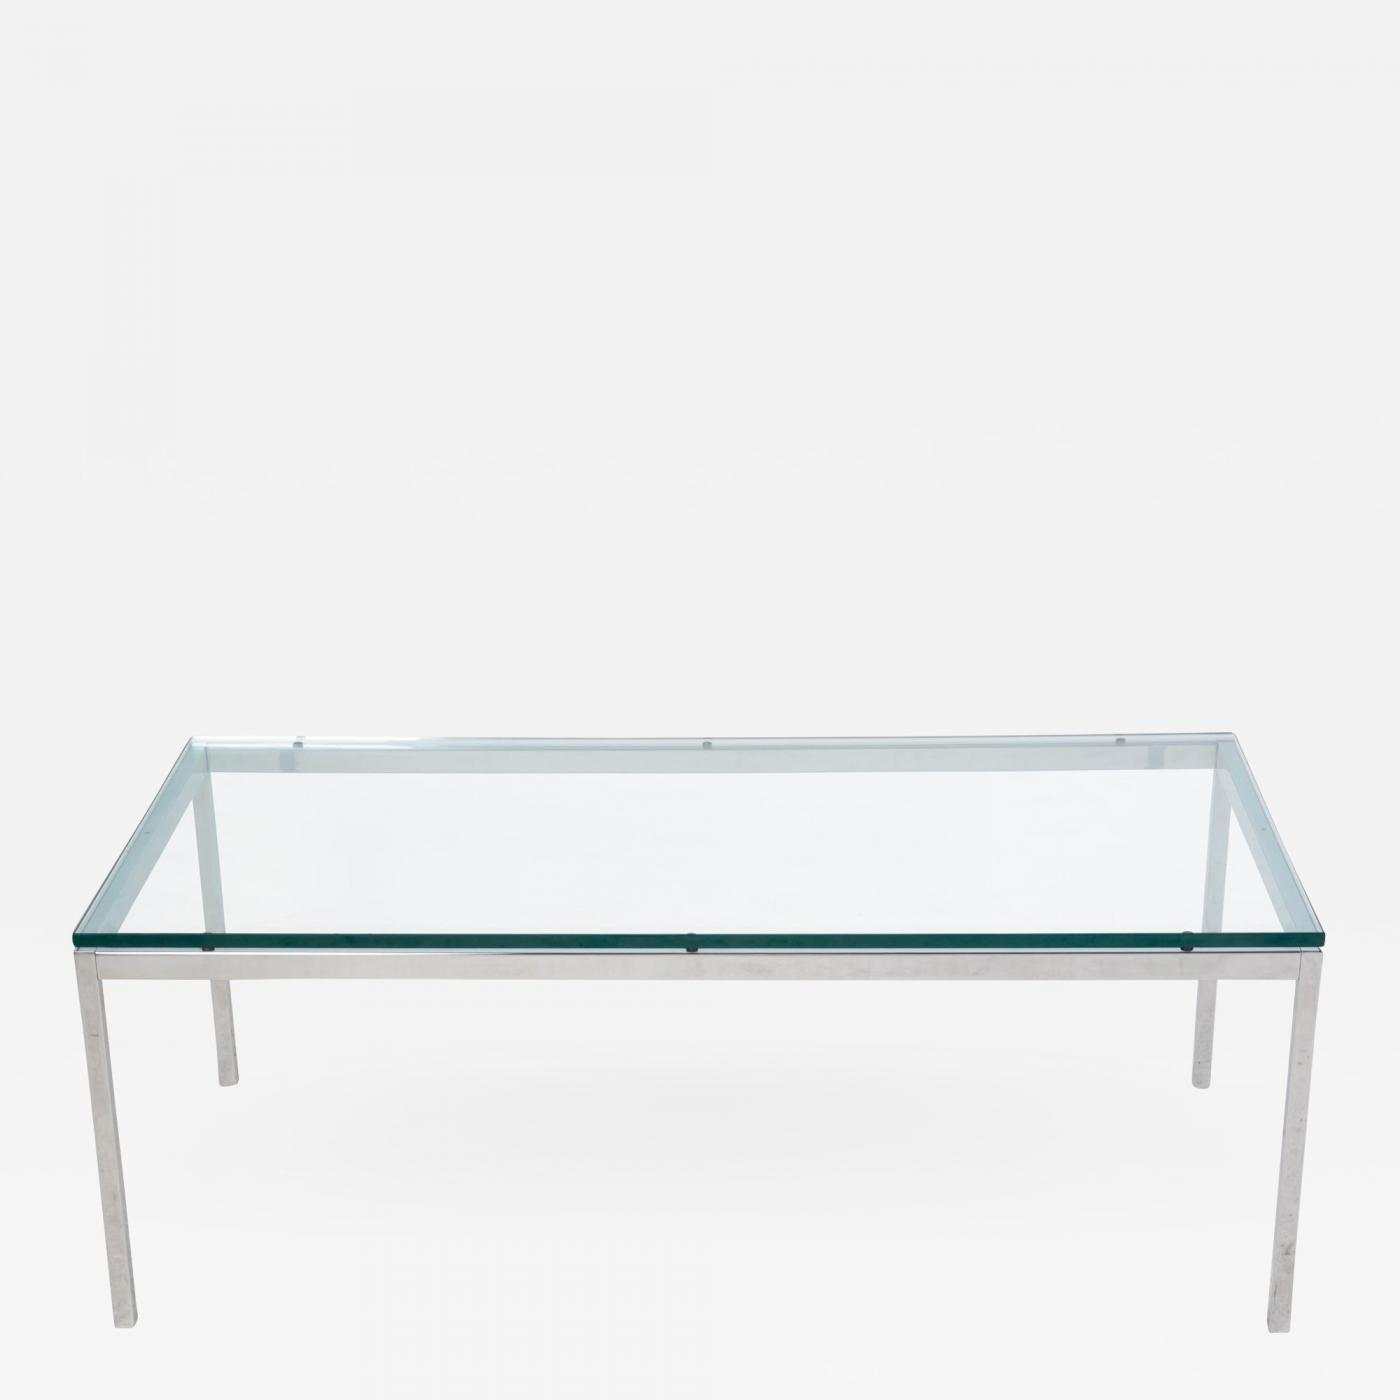 Knoll Contemporary Chrome Florence Knoll Coffee Table [ 1400 x 1400 Pixel ]